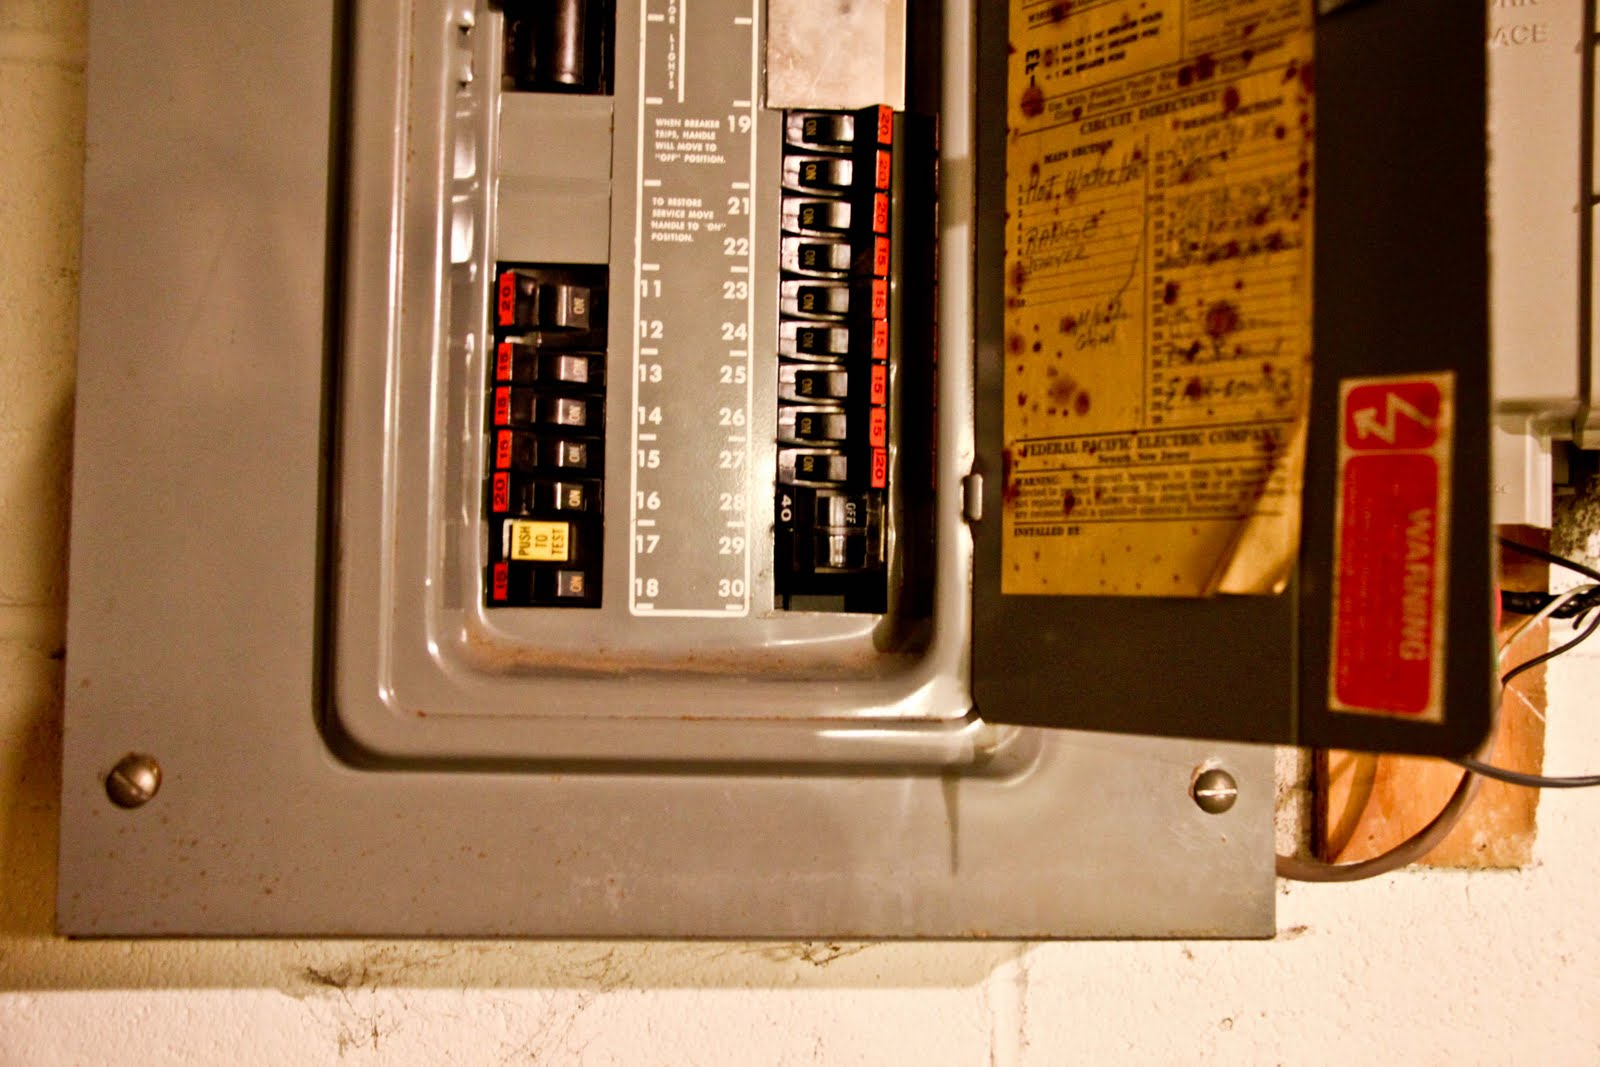 IMG_4614 replacing fuse on central ac unit work space how to find fuse box in house at gsmx.co